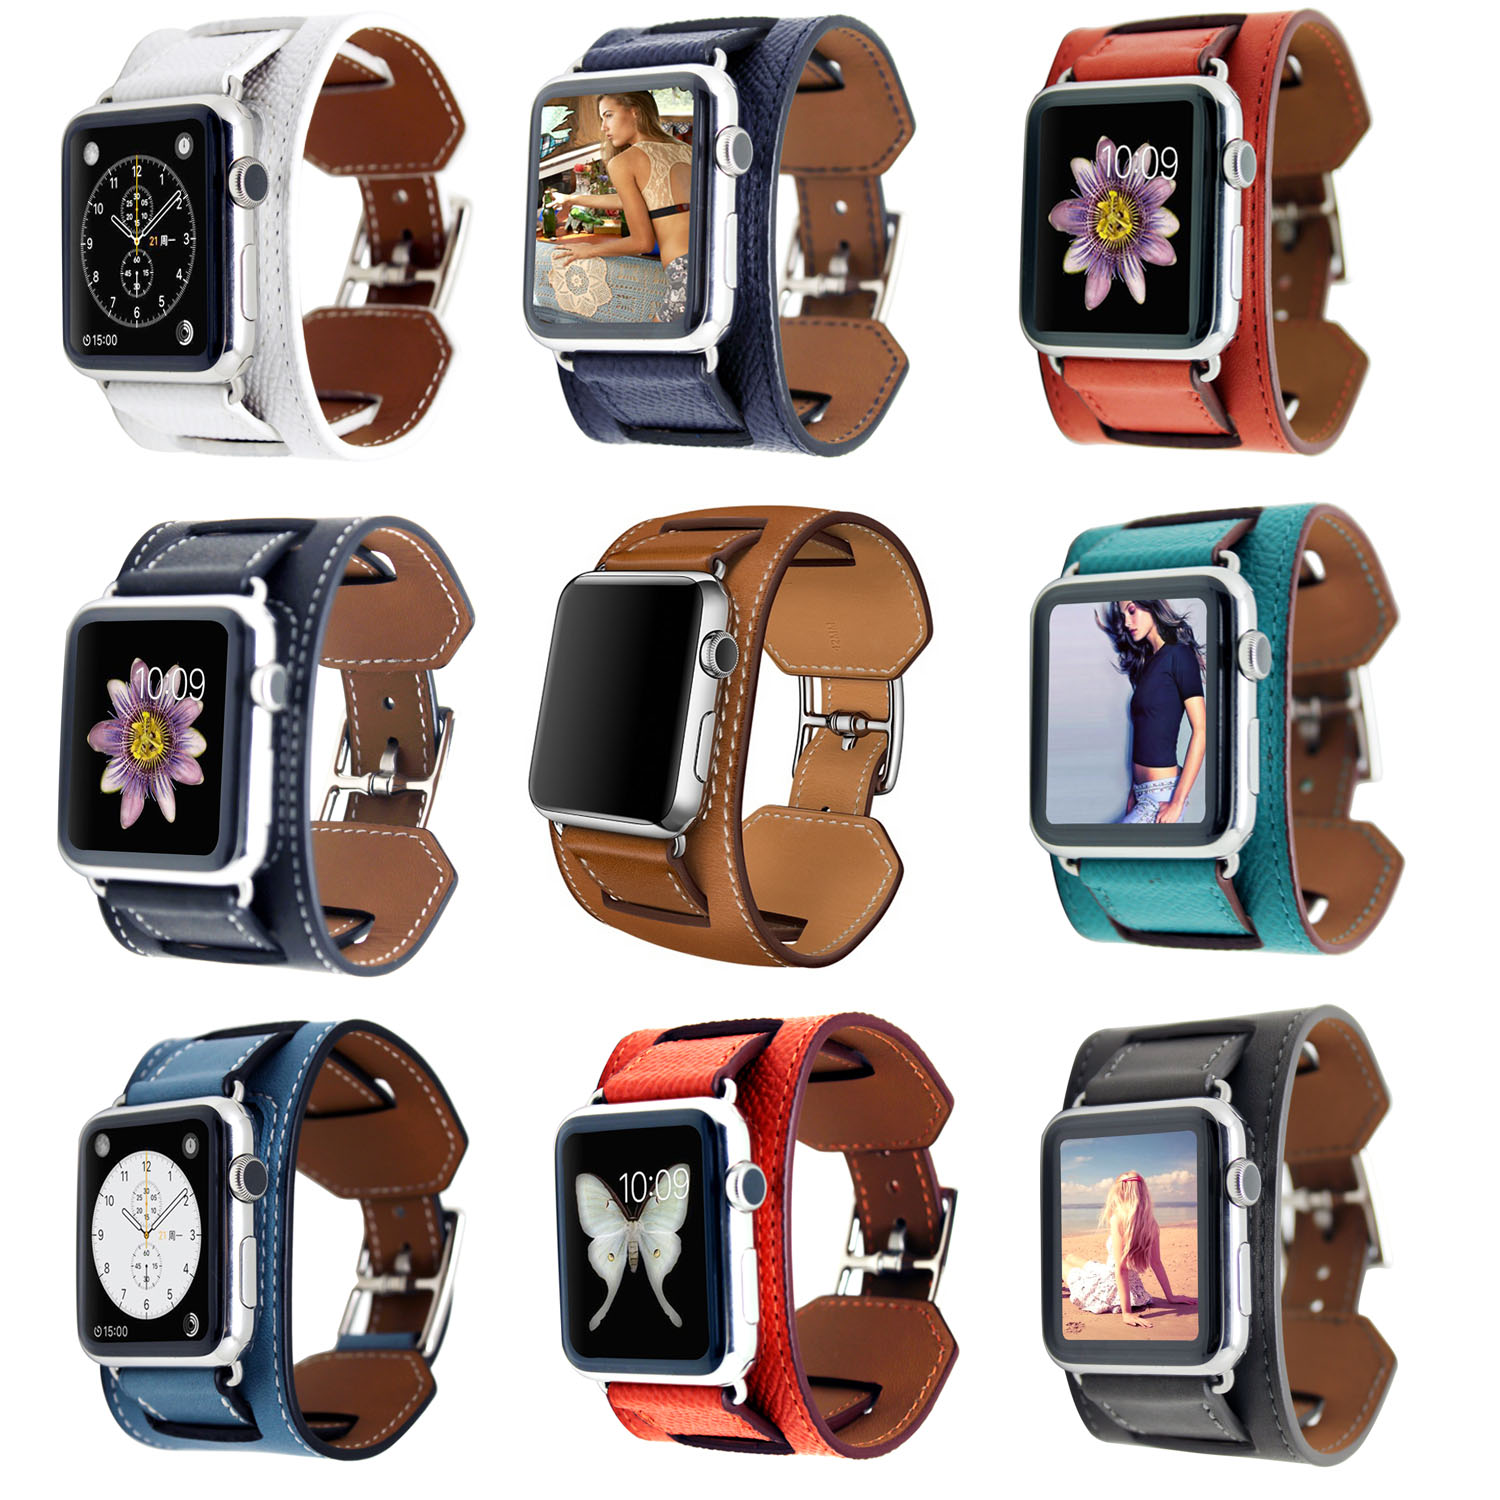 High Quality Litchi Genuine Leather Cuff Bracelet for Apple Watch Series 2 Watch Band Strap for Apple Watch iWatch 1st 42mm 38mm<br><br>Aliexpress